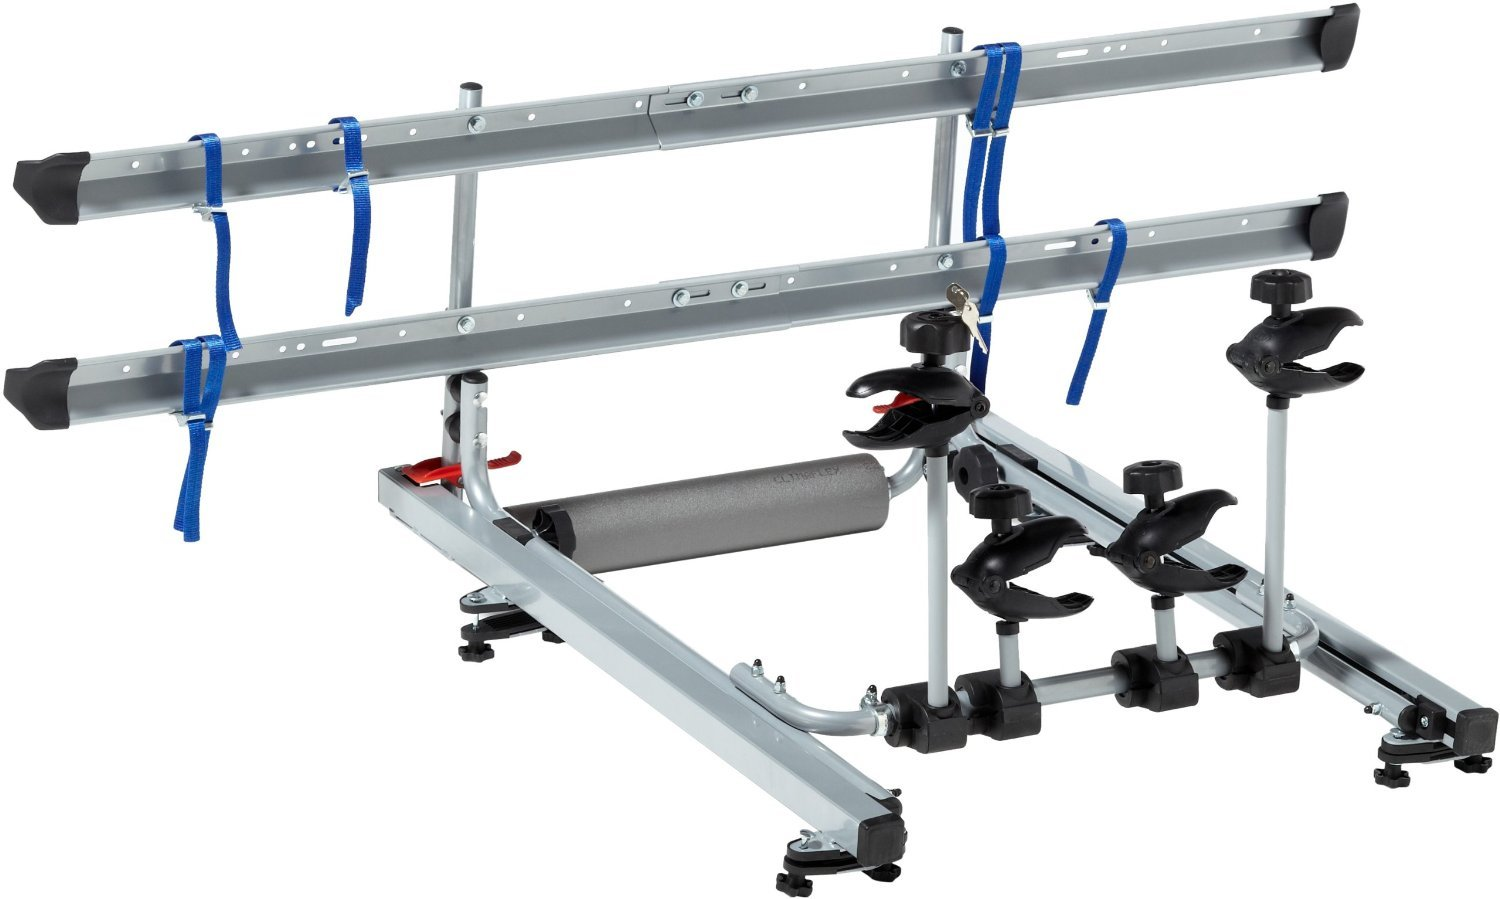 Fischer 18092 Dachlift Bicycle Carrier for 2 Bicycles